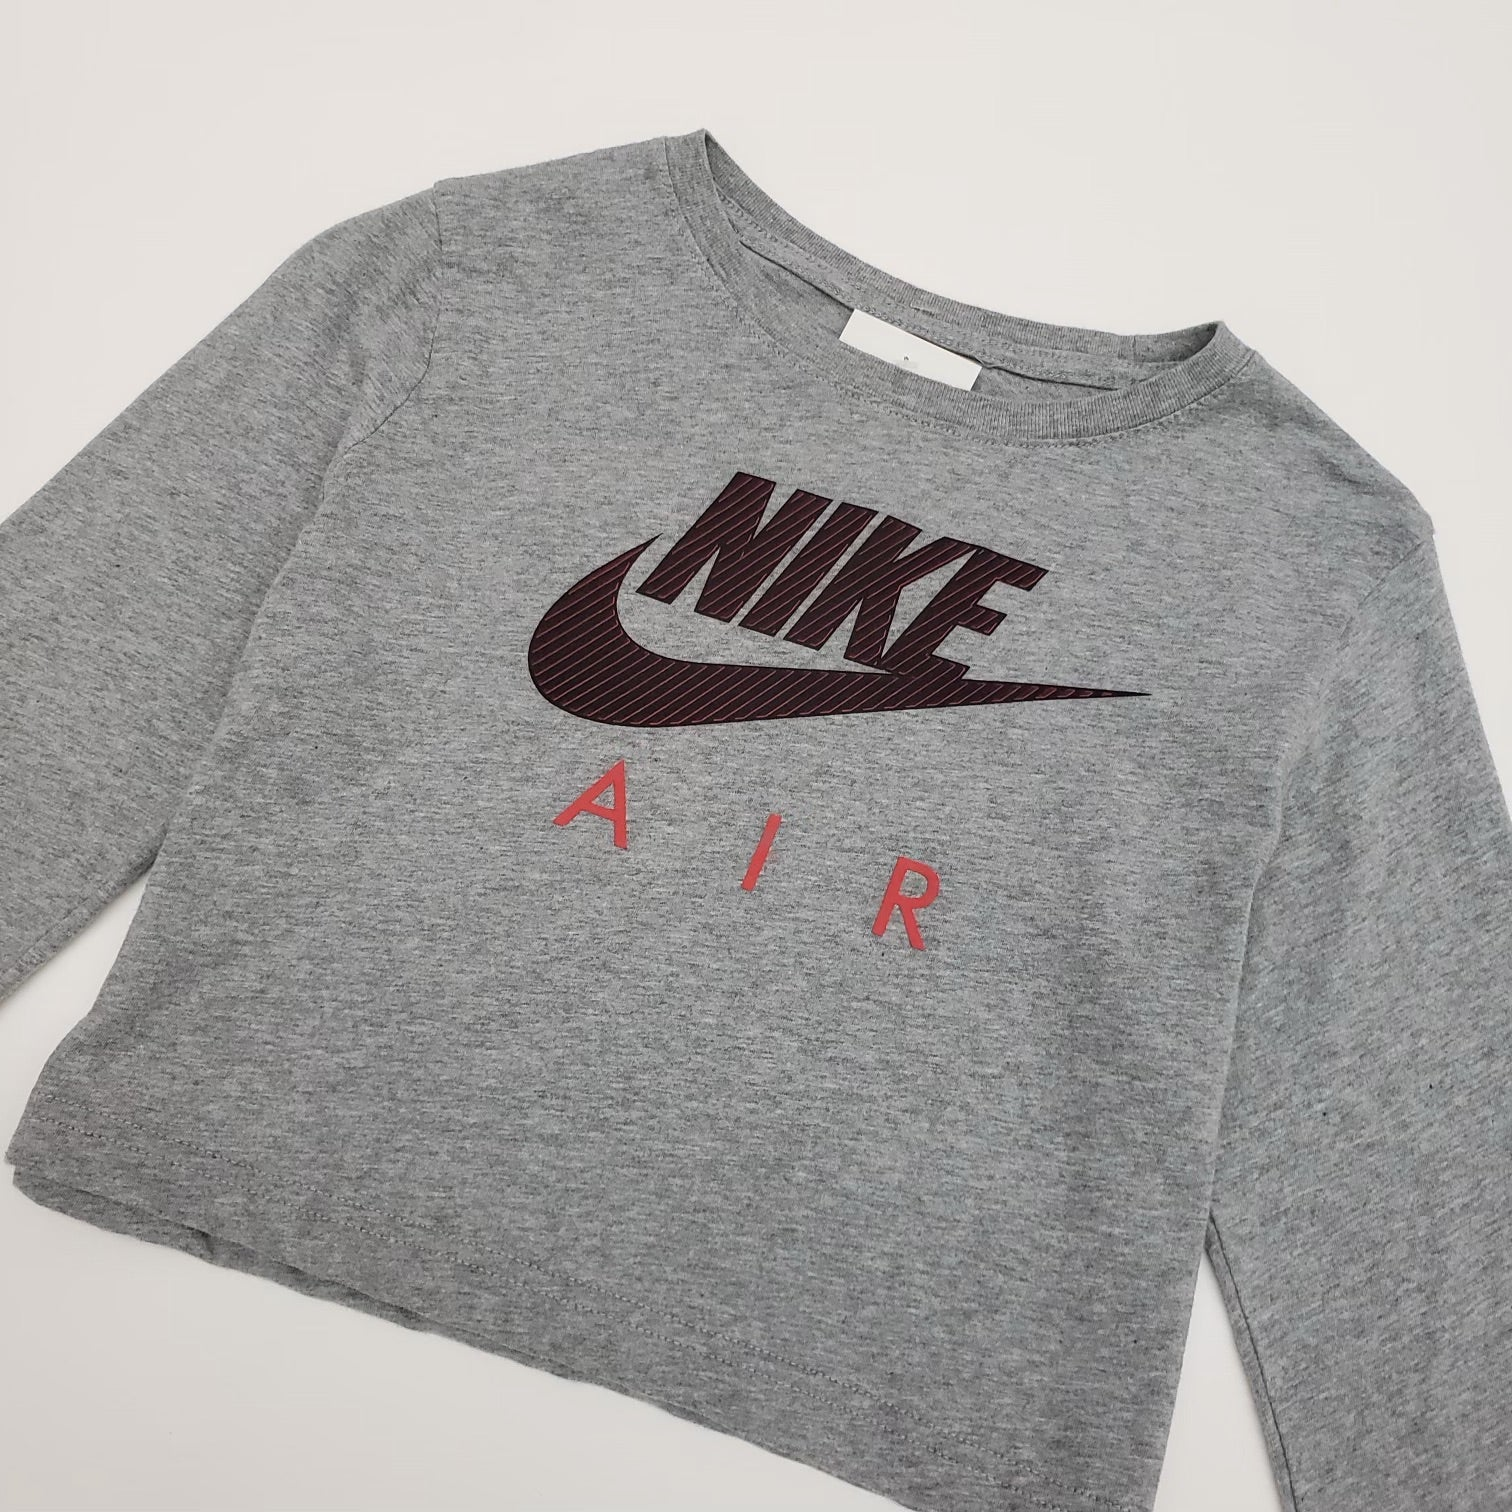 Nike Air Long Sleeve Crop Top